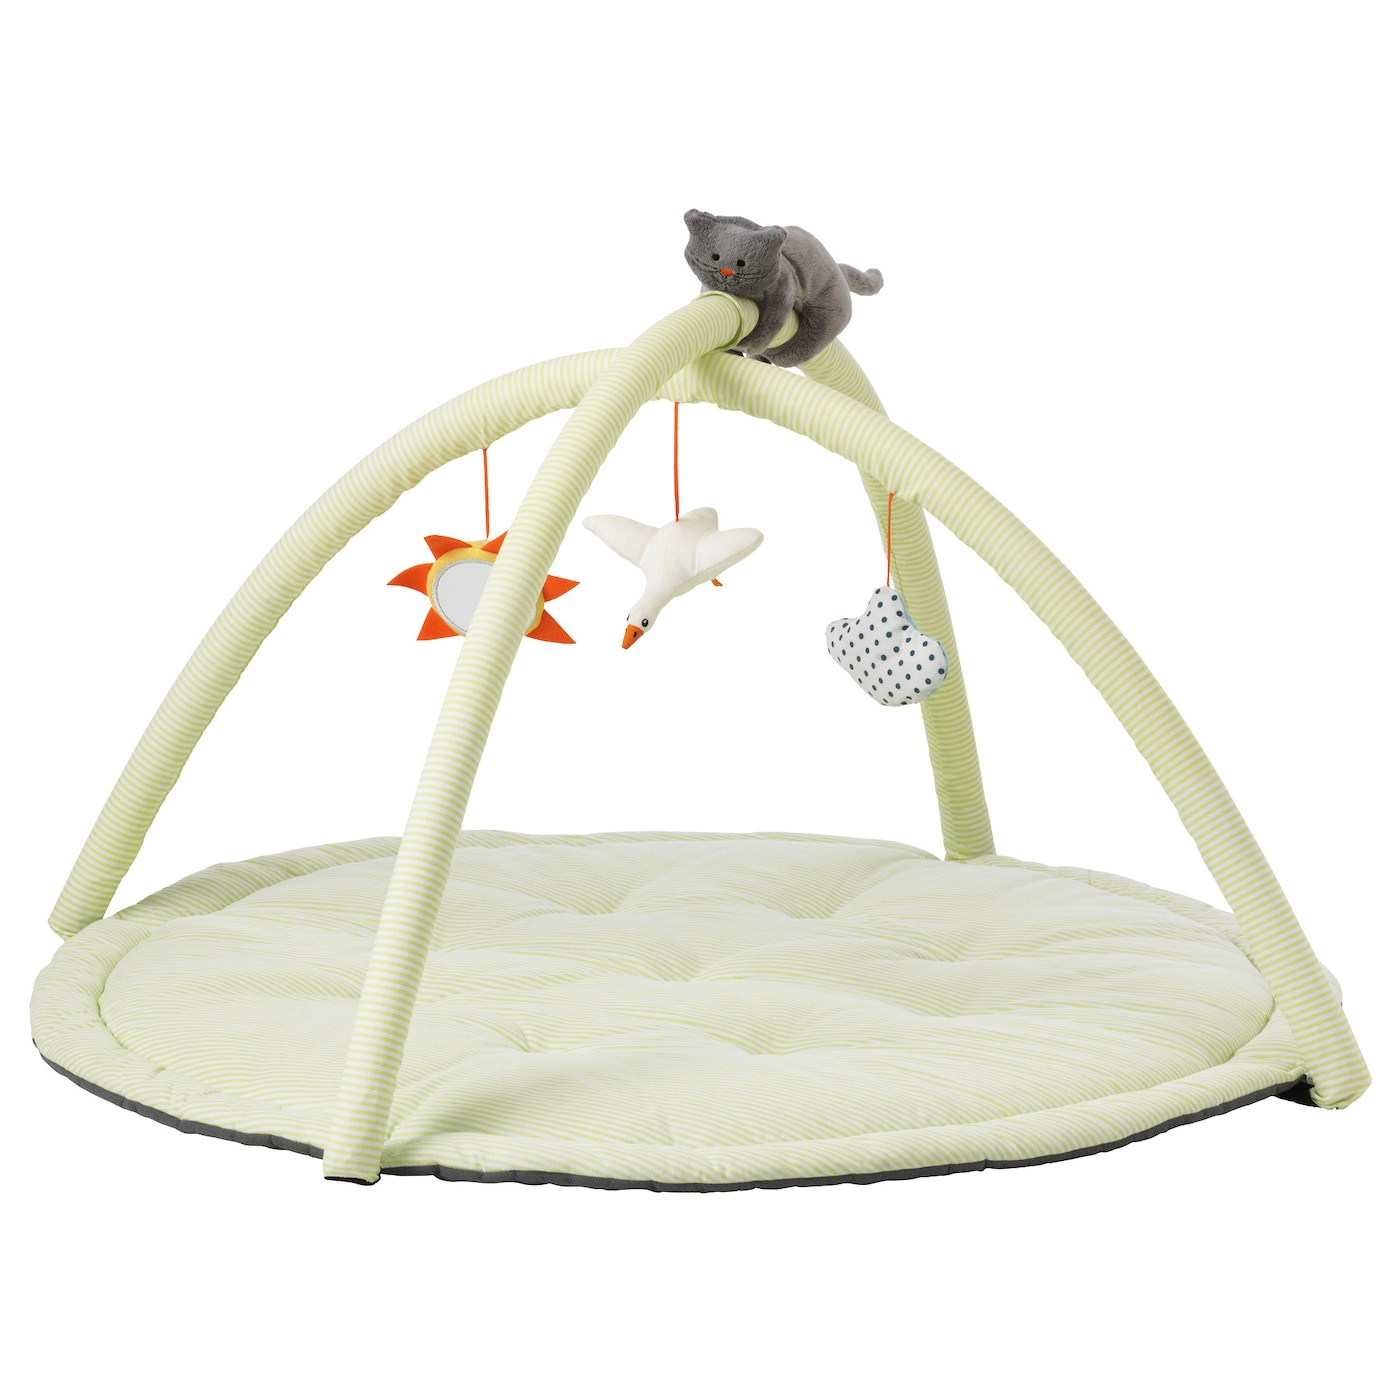 IKEA LEKA baby gym Reaching out for toys stimulates the baby's development of eye-hand coordination.